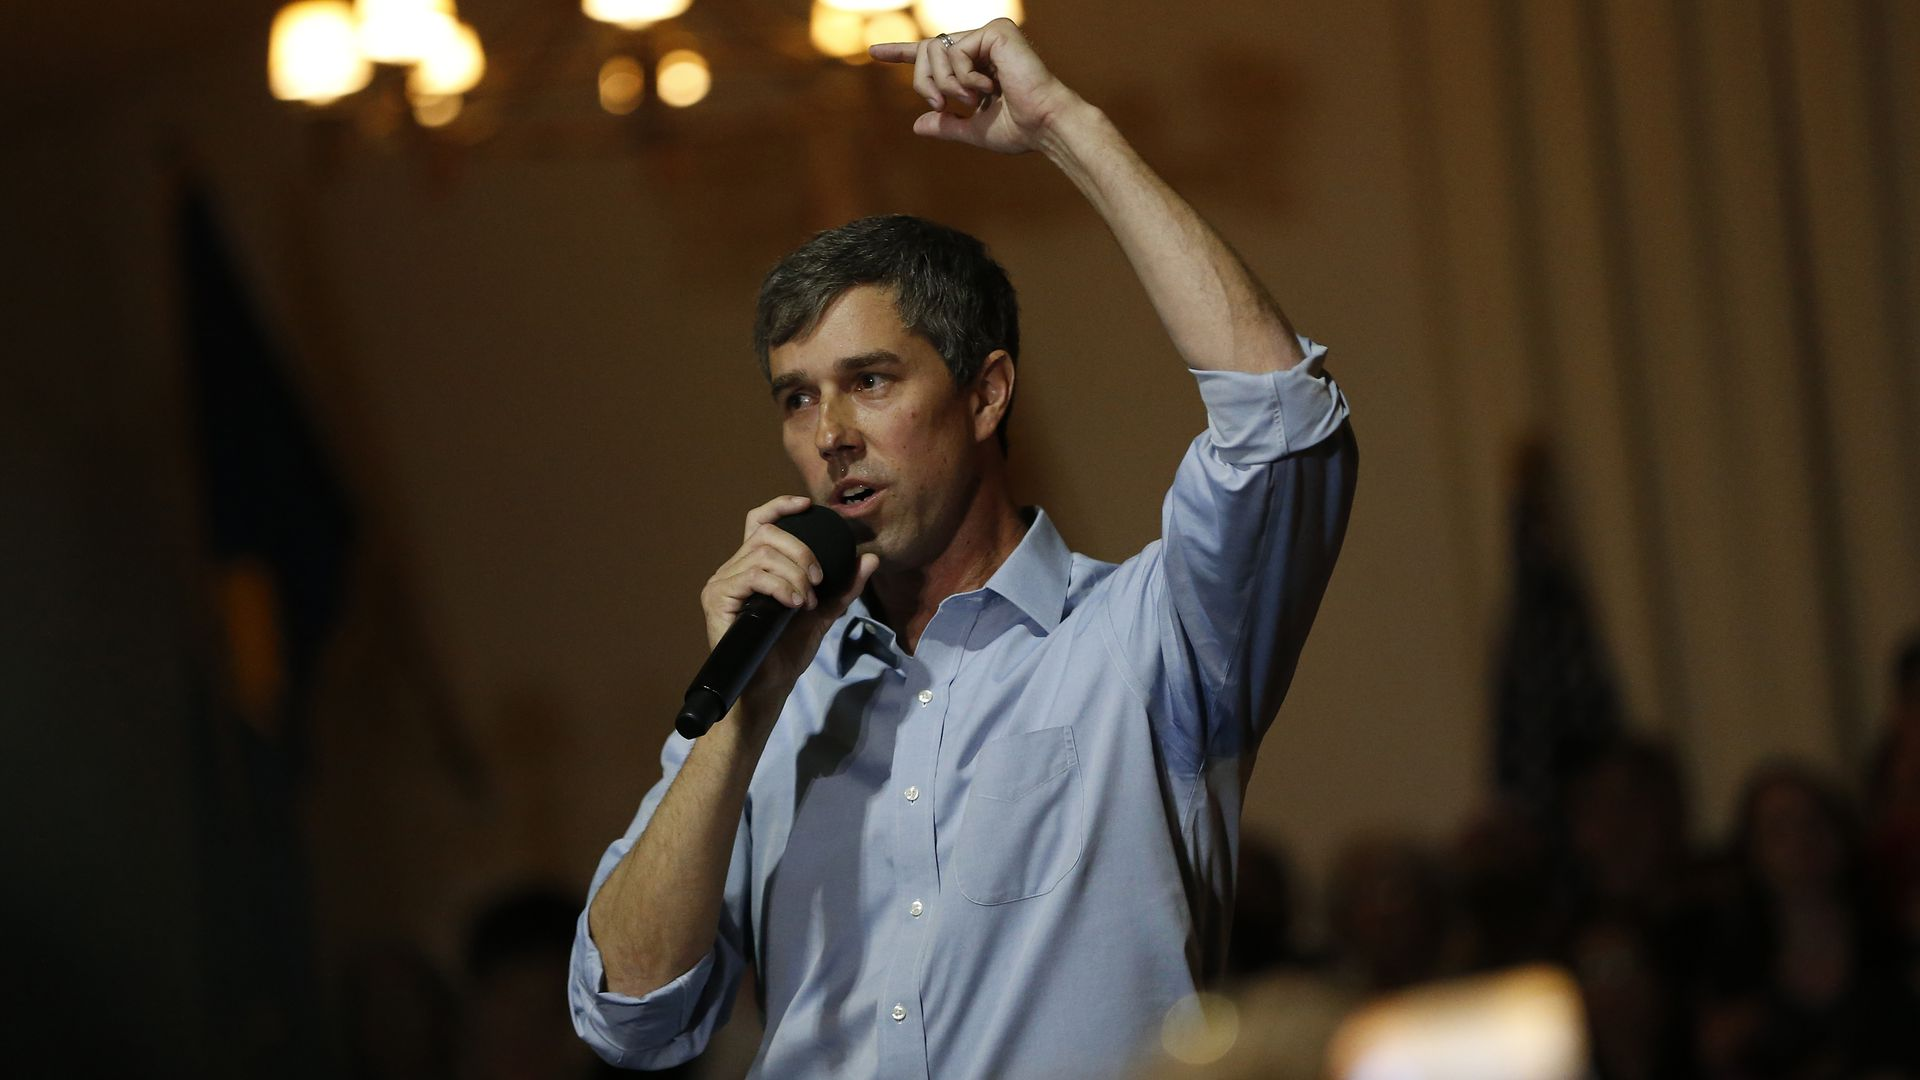 Democratic presidential candidate and former U.S. Rep. Beto O'Rourke (D-TX) speaks at a campaign town hall at the Irish Cultural Center on April 28, 2019 in San Francisco, California.